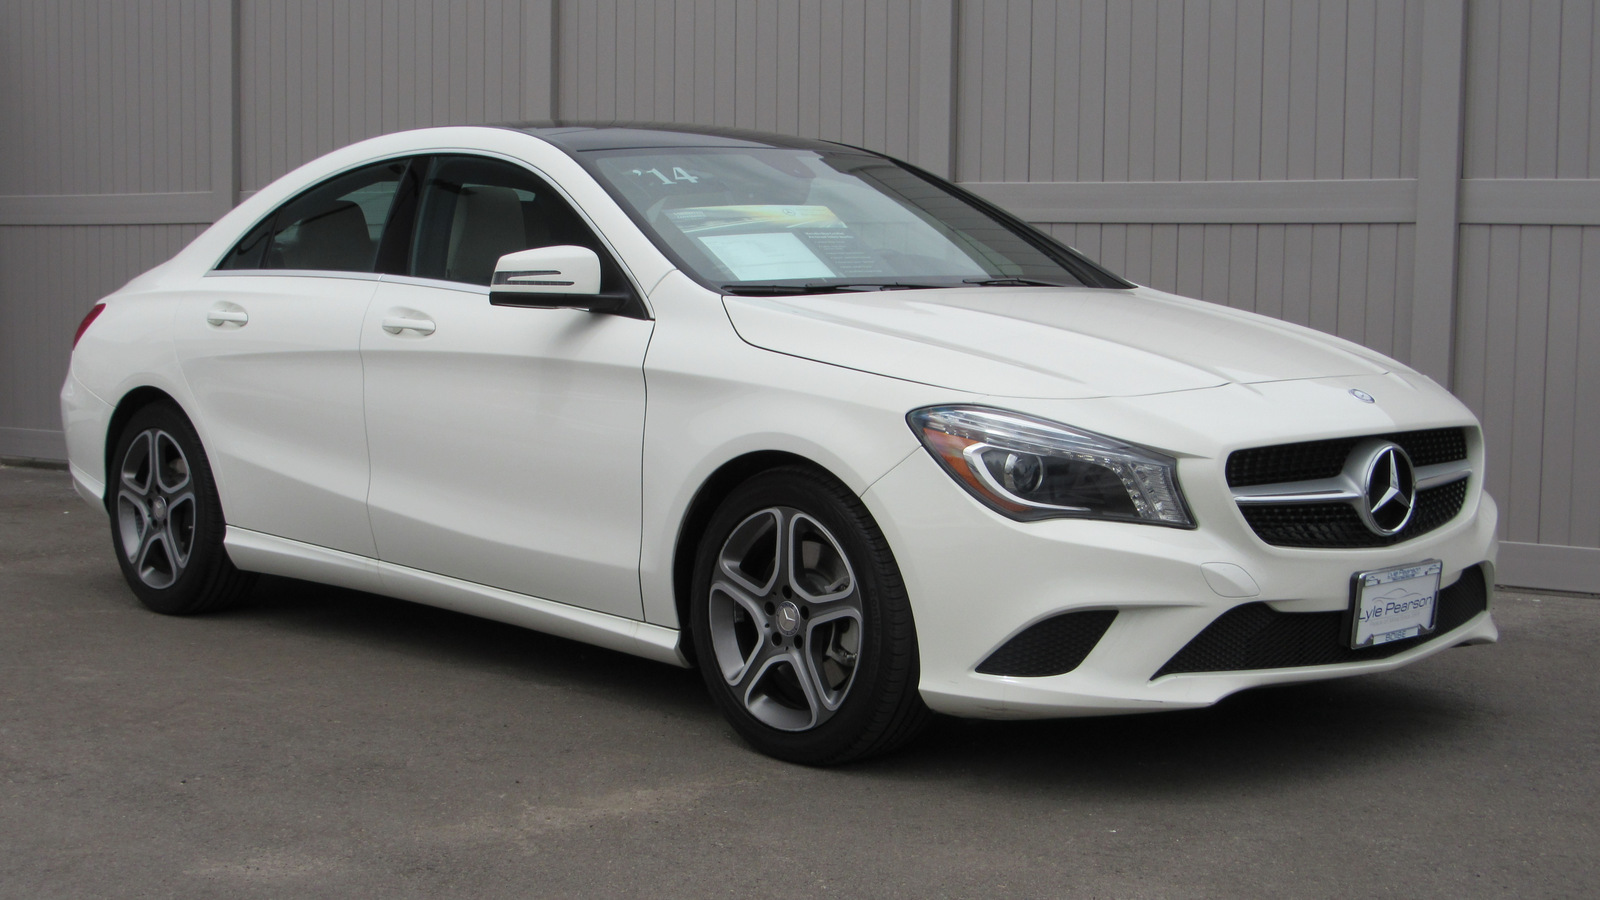 Mercedes Benz Cla >> Pre Owned 2014 Mercedes Benz Cla Cla250 Coupe Coupe For Sale